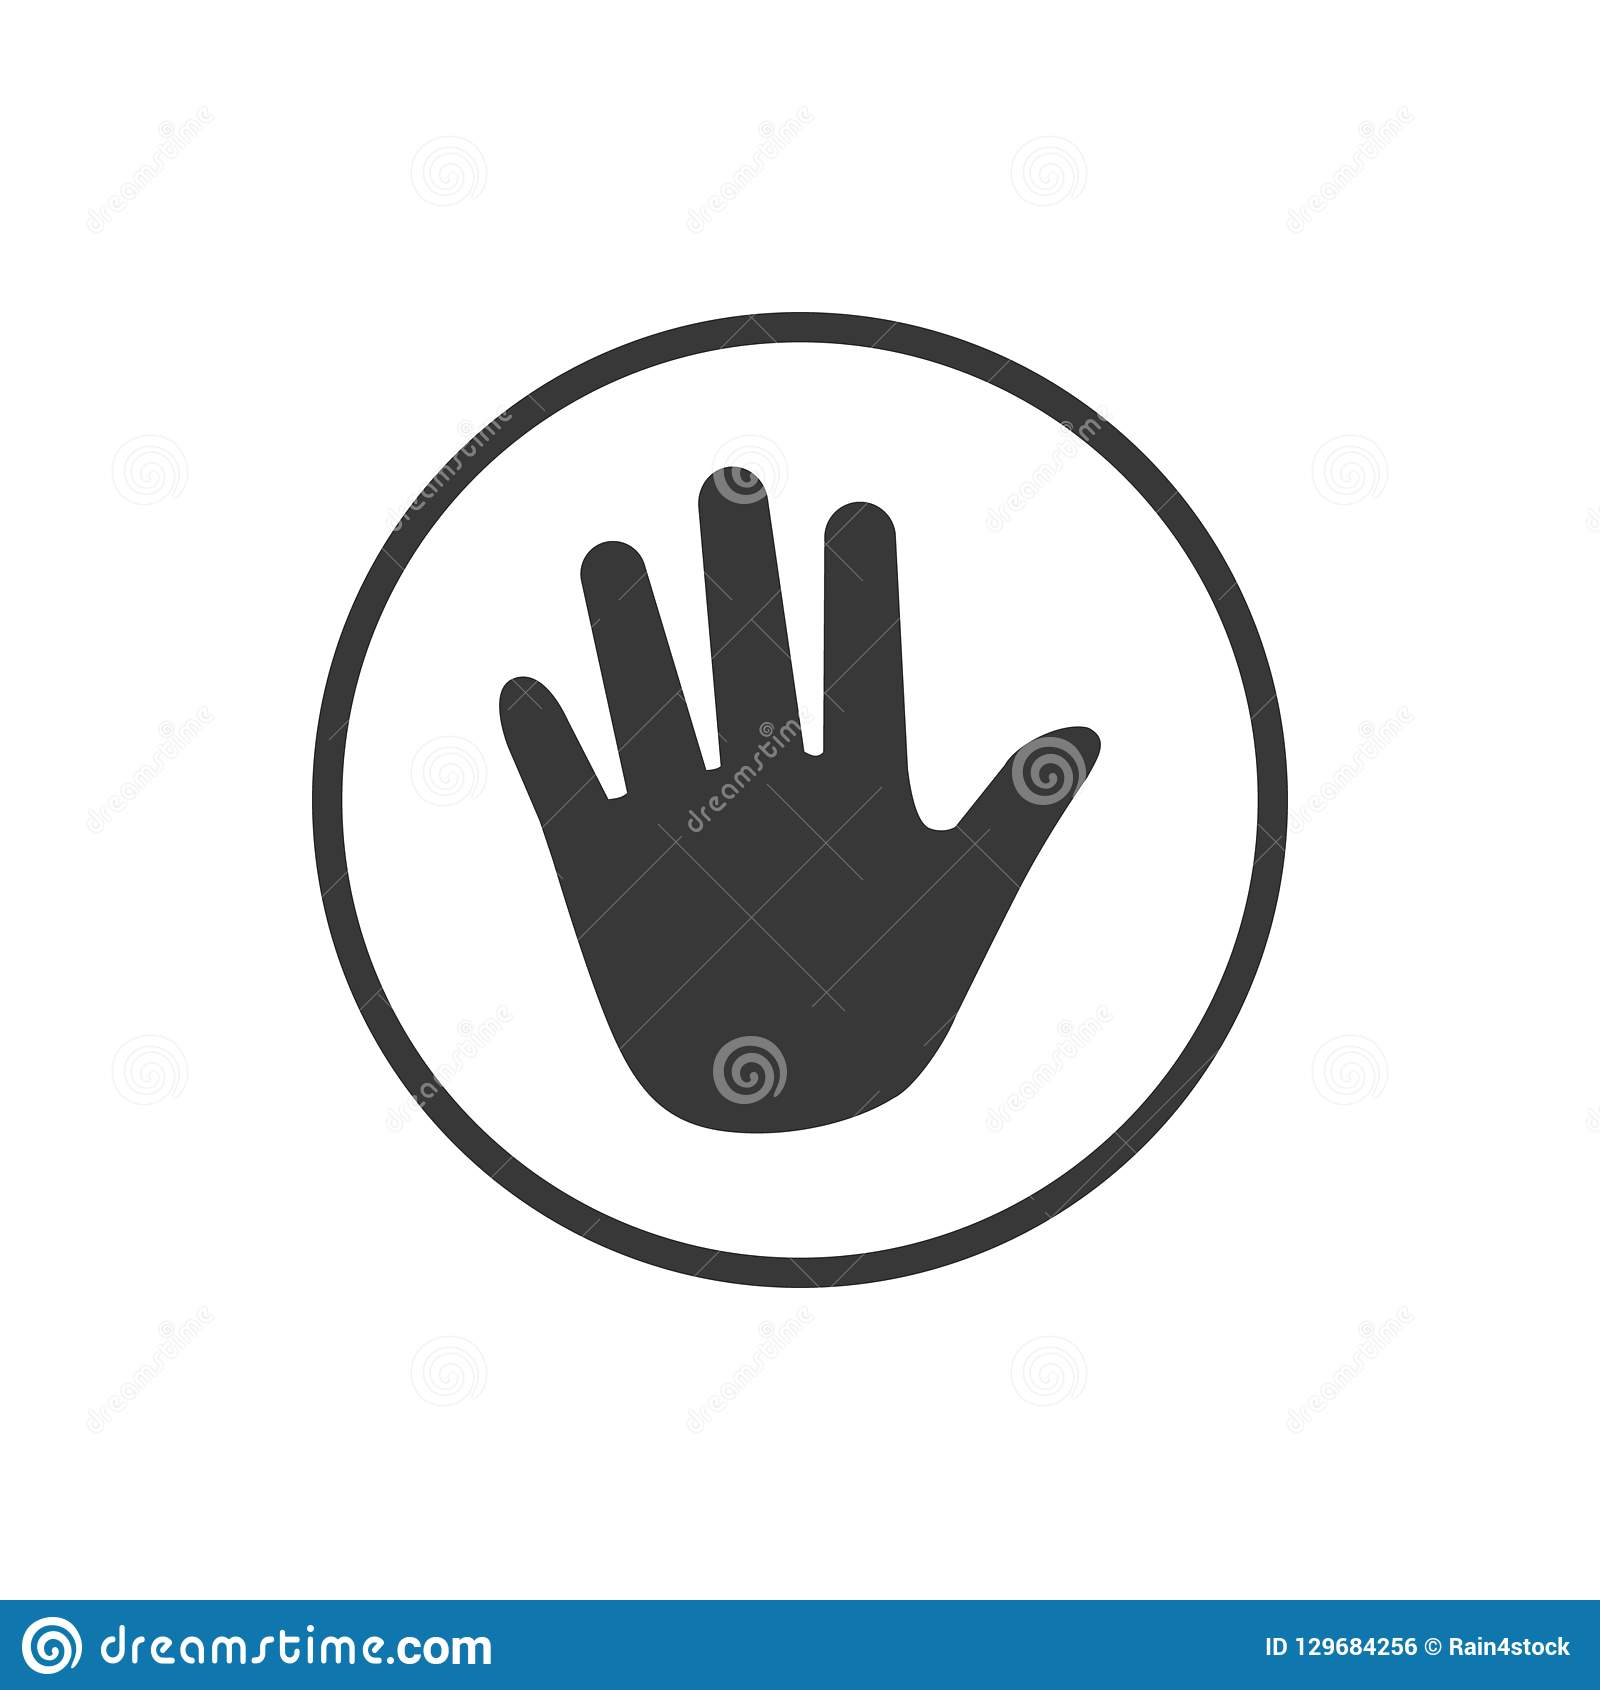 Hand icon in circle . Vector illustration isolated on white background.